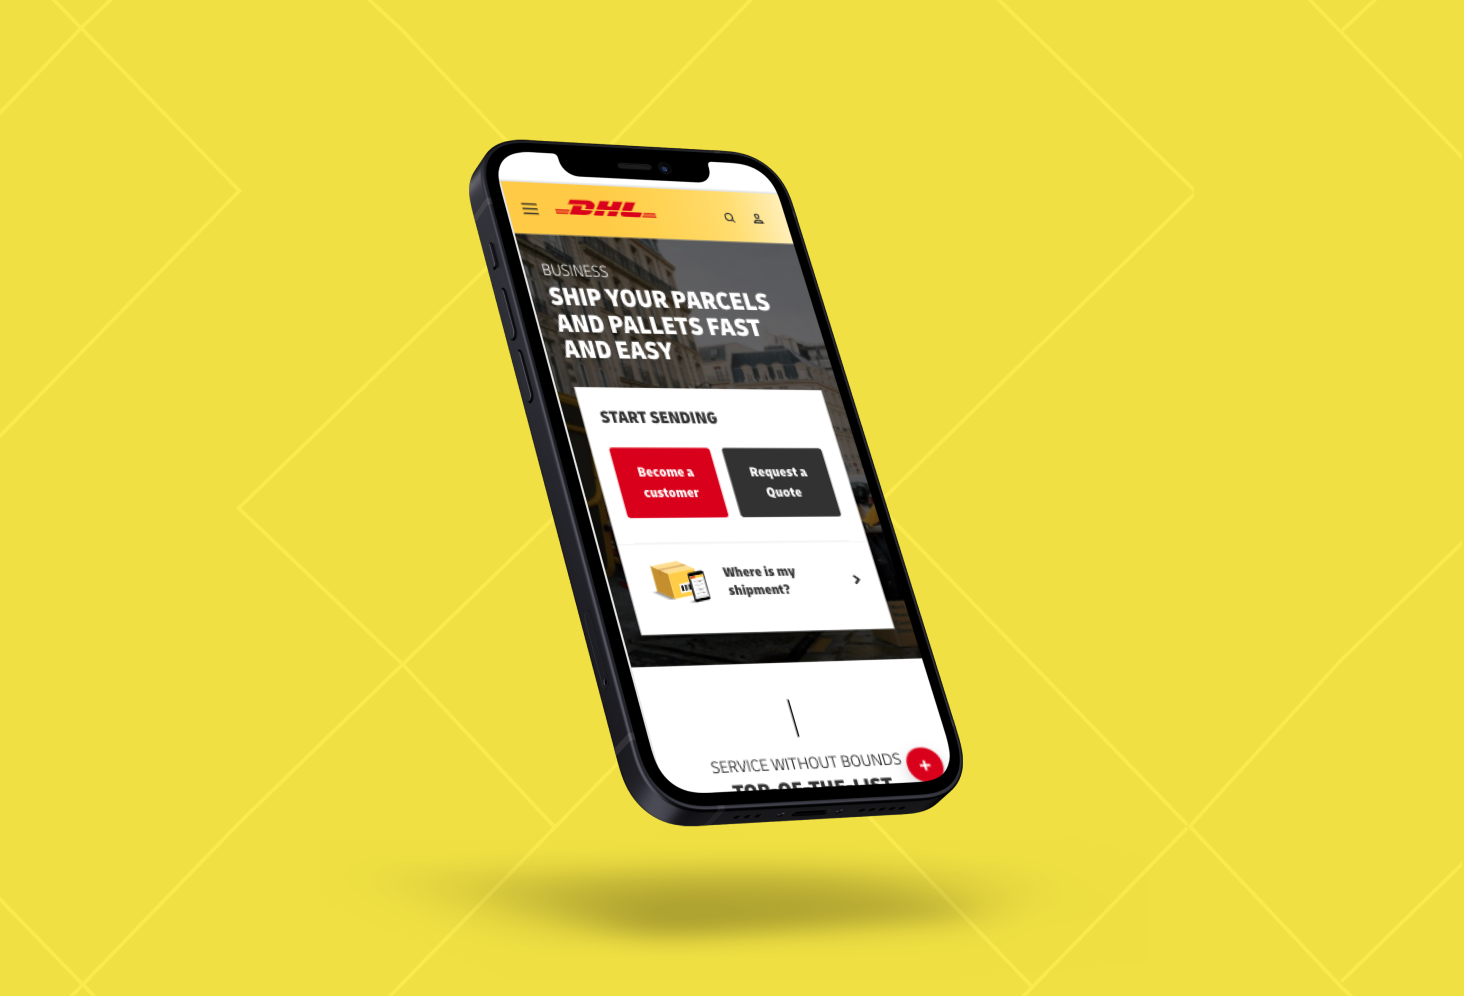 DHL – apps for internal use